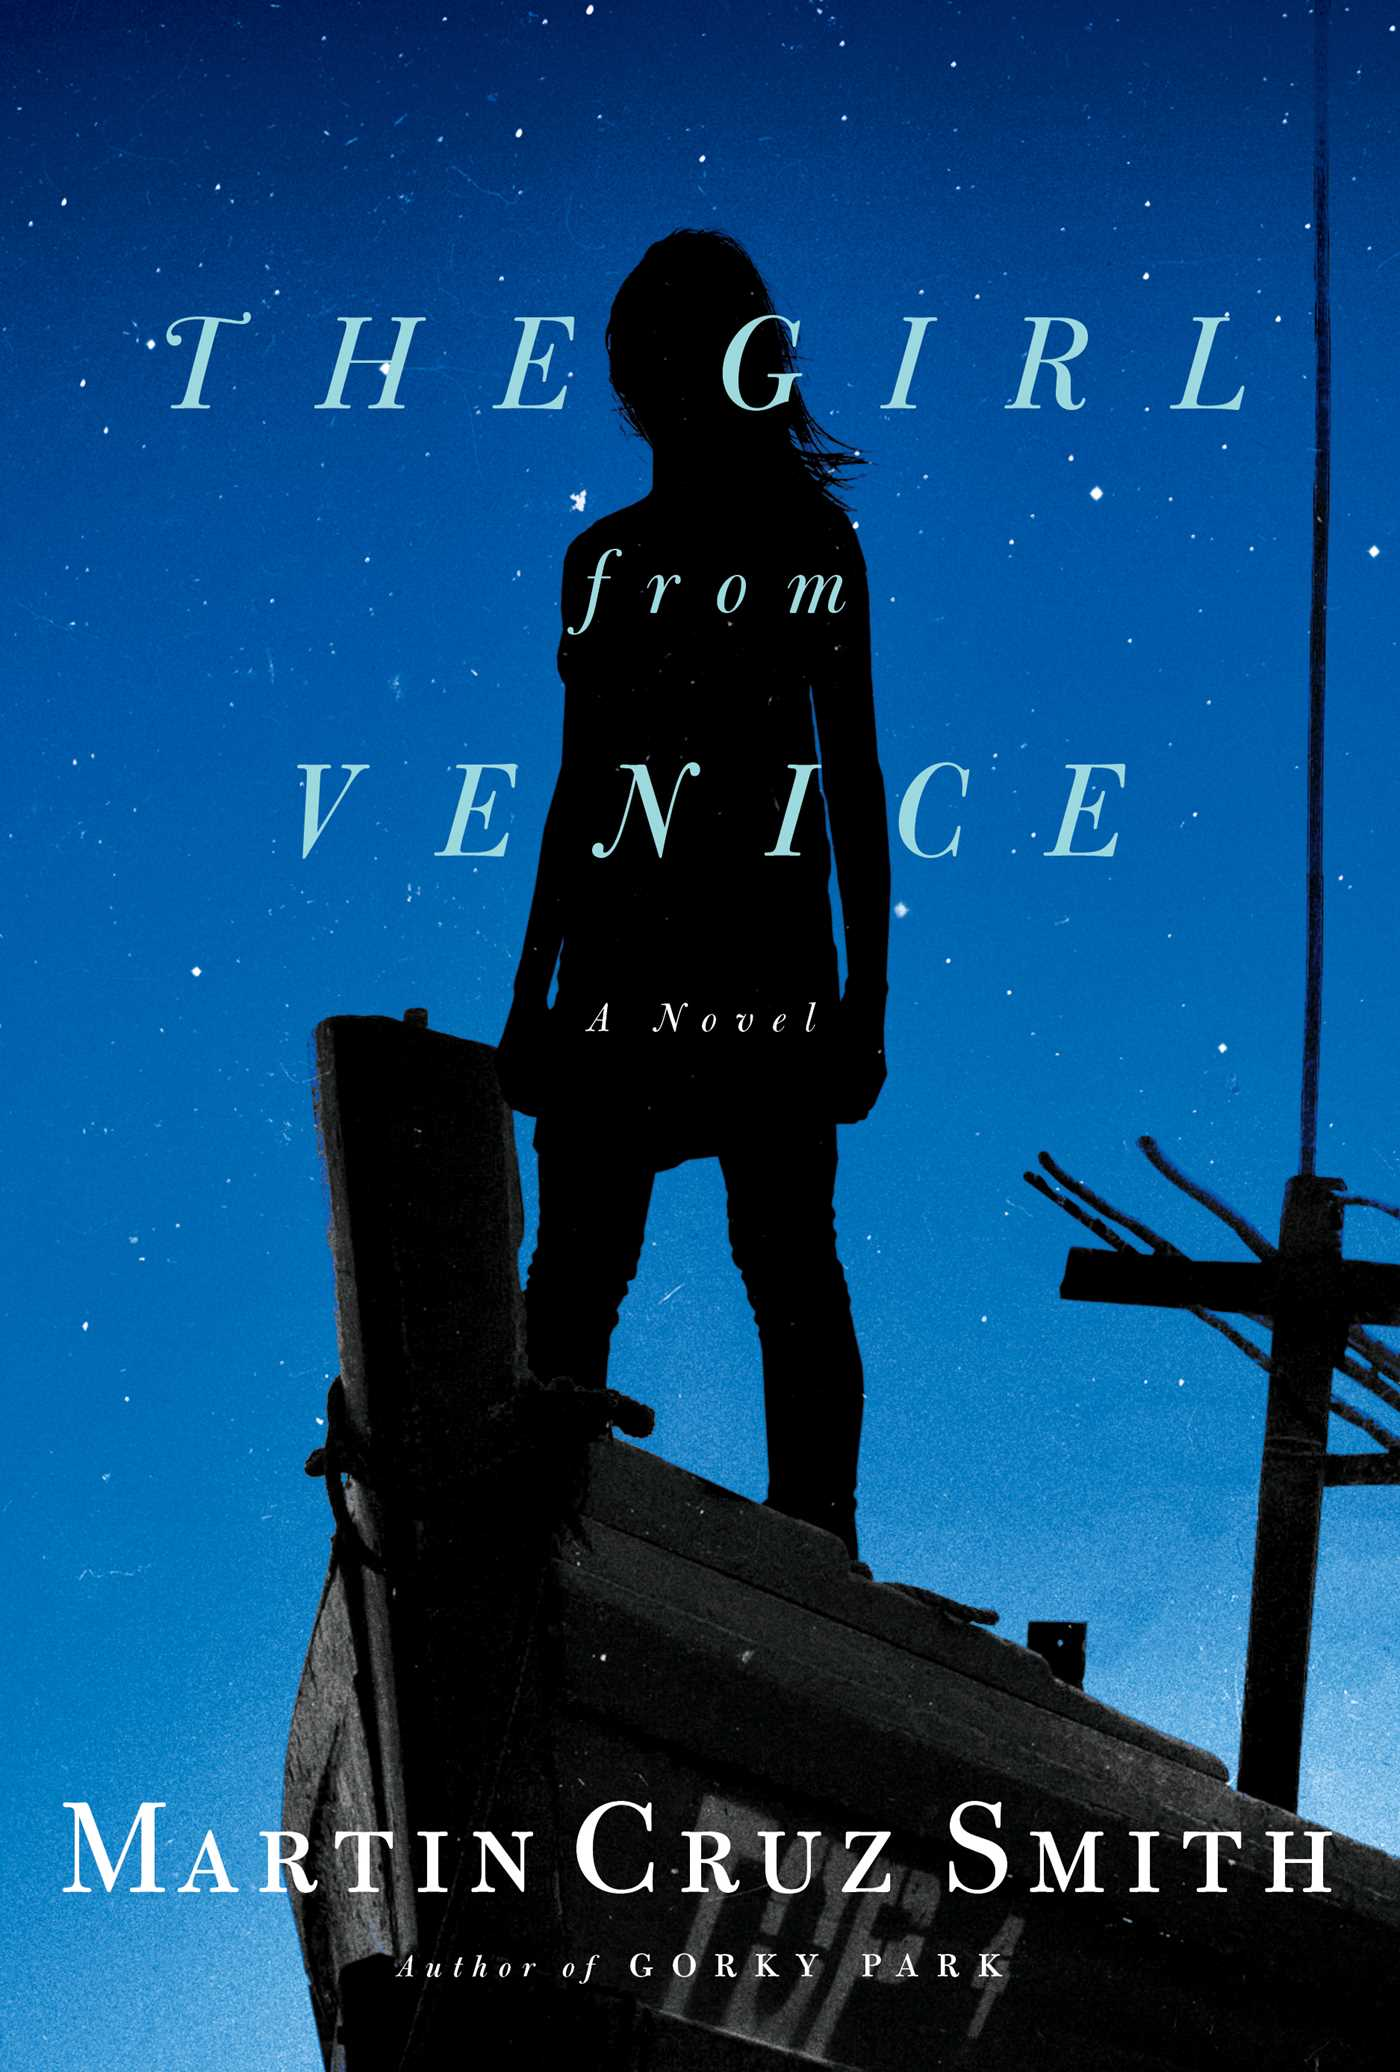 The girl from venice 9781439140239 hr